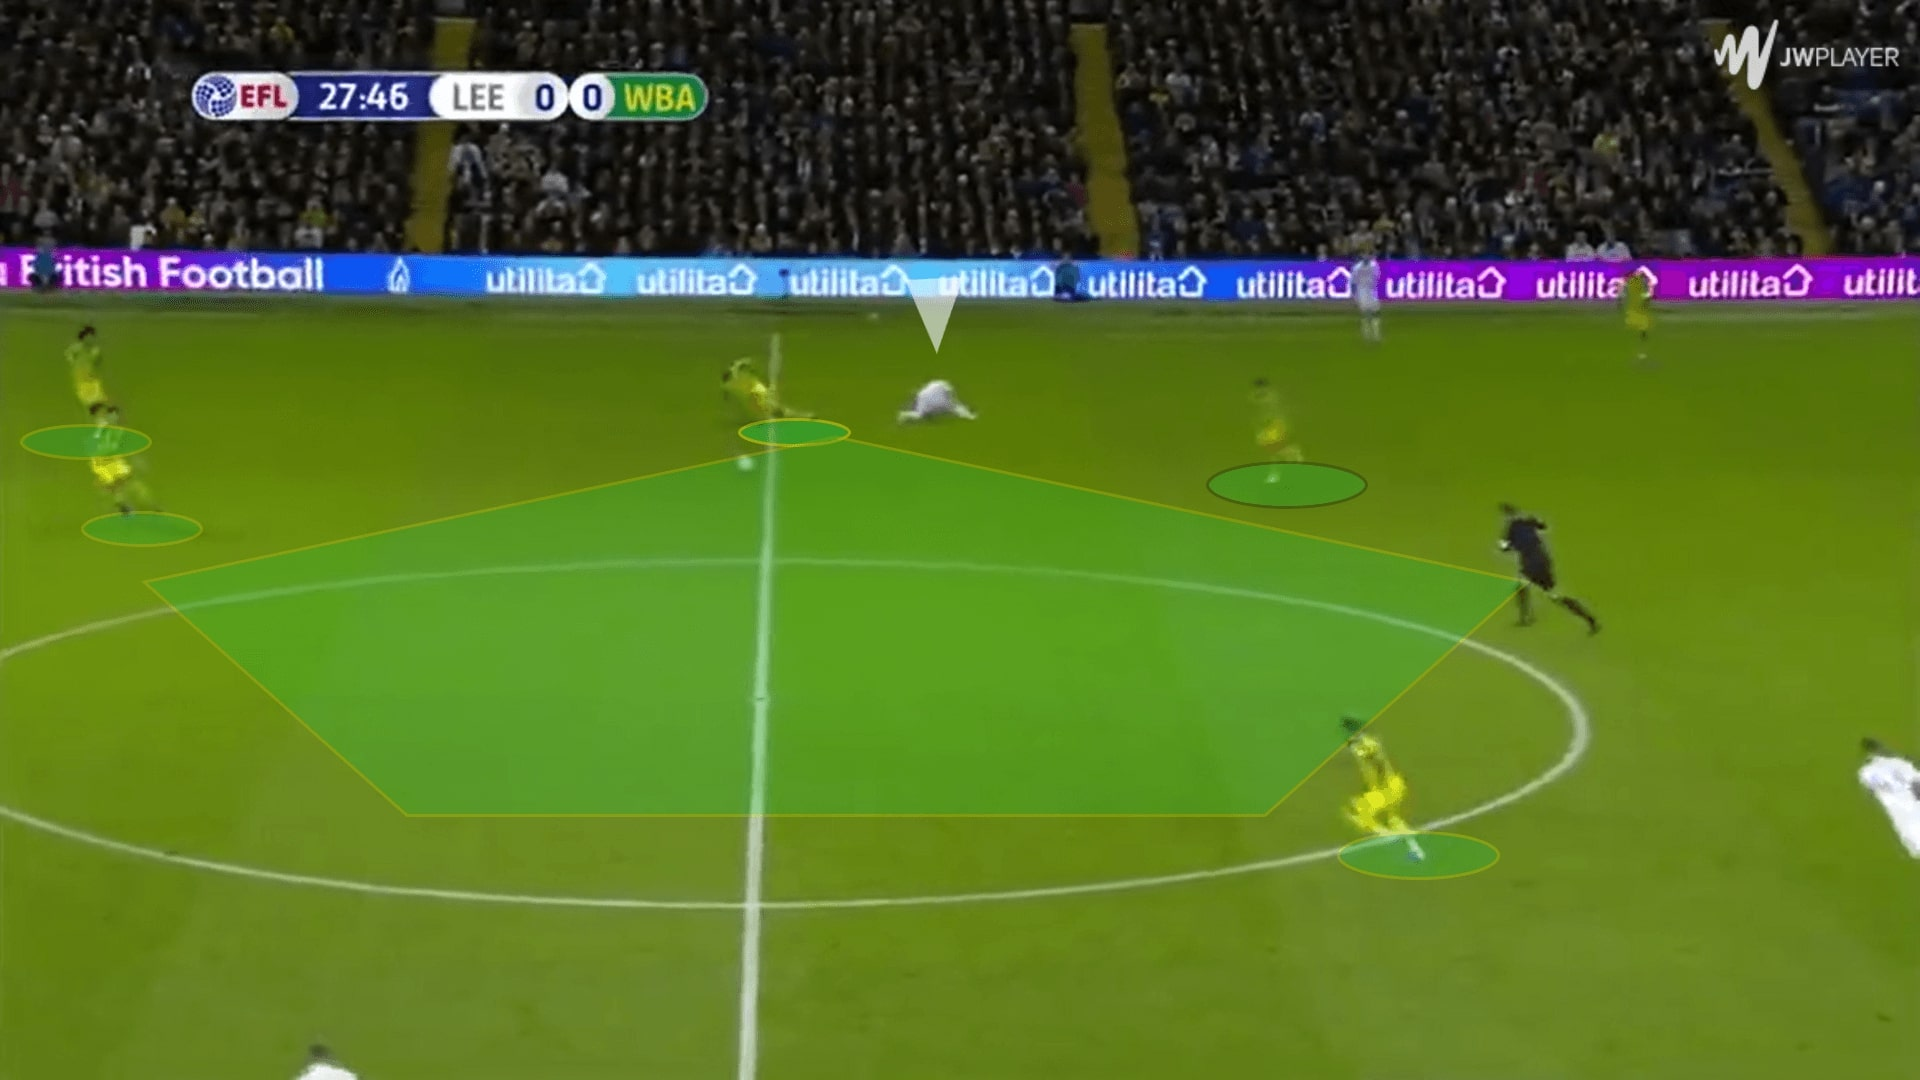 Leeds United 2019/20: their transition phases - scout report - tactical analysis tactics